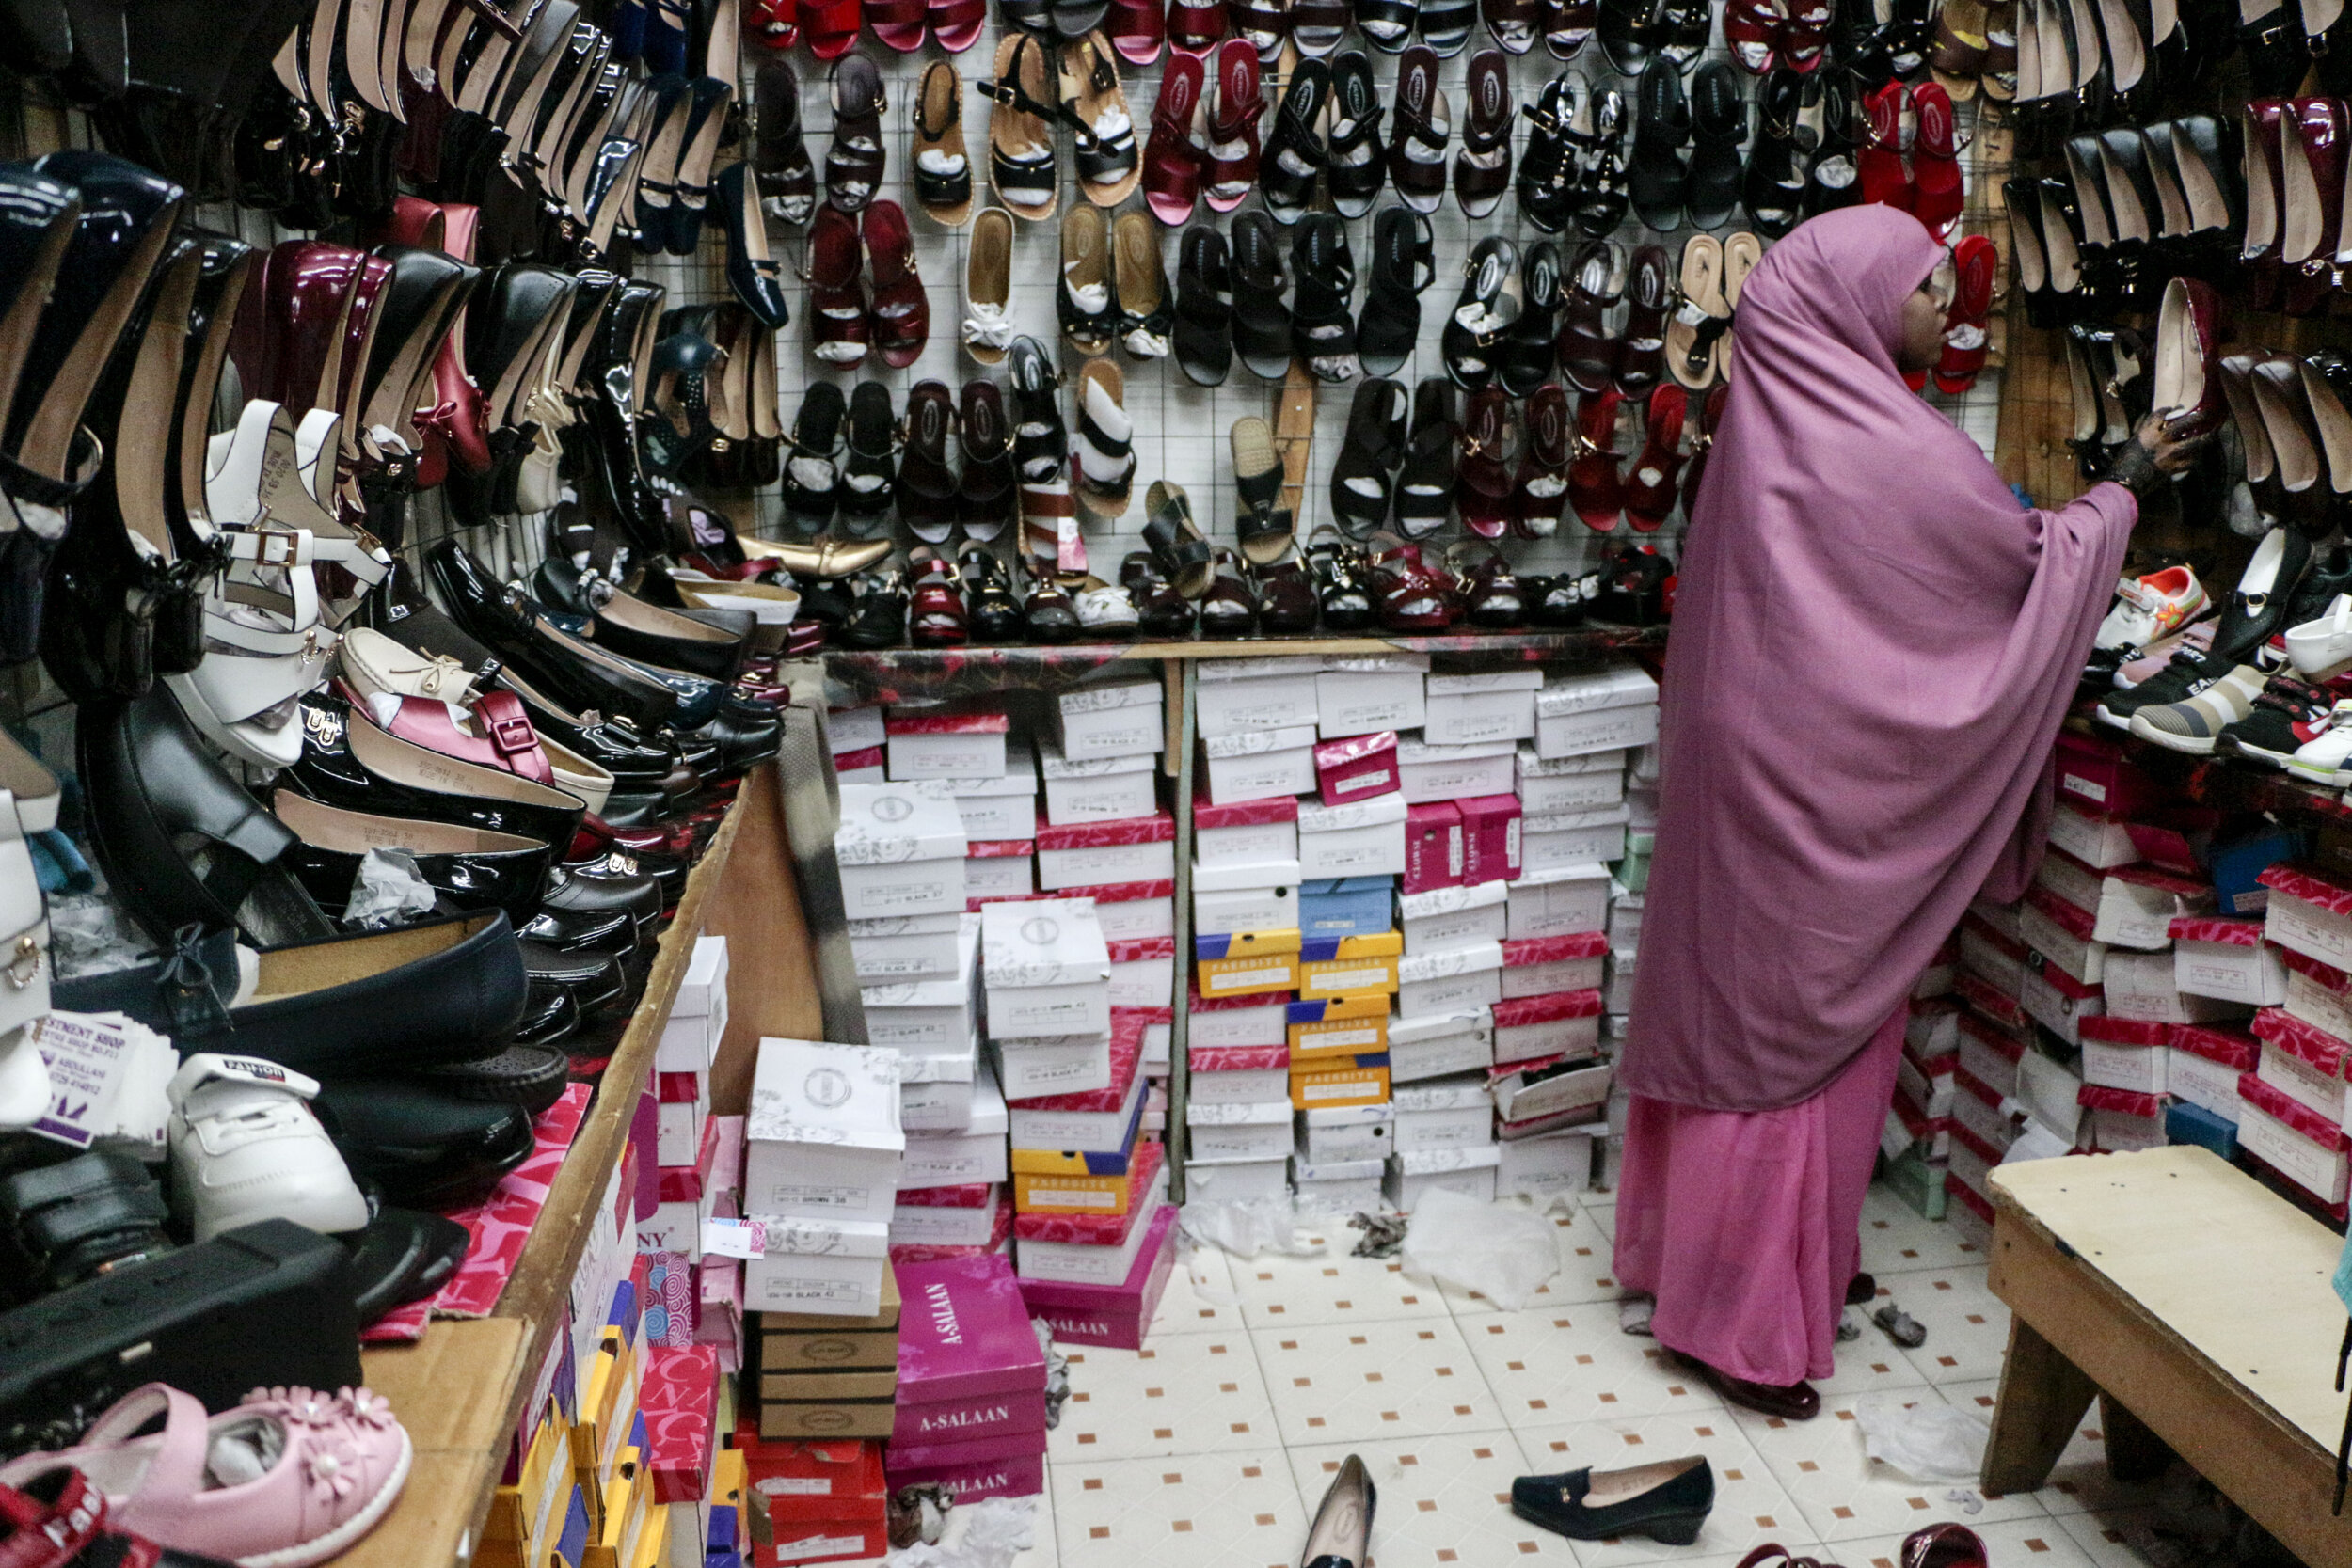 Hamdi Kosar looks at shoes at a market in the Eastleigh neighborhood Aug. 16 in Nairobi. The neighborhood is predominantly inhabited by Somali Muslims and many refugees shop here while they are in the resettlement centers before they head elsewhere to seek asylum.